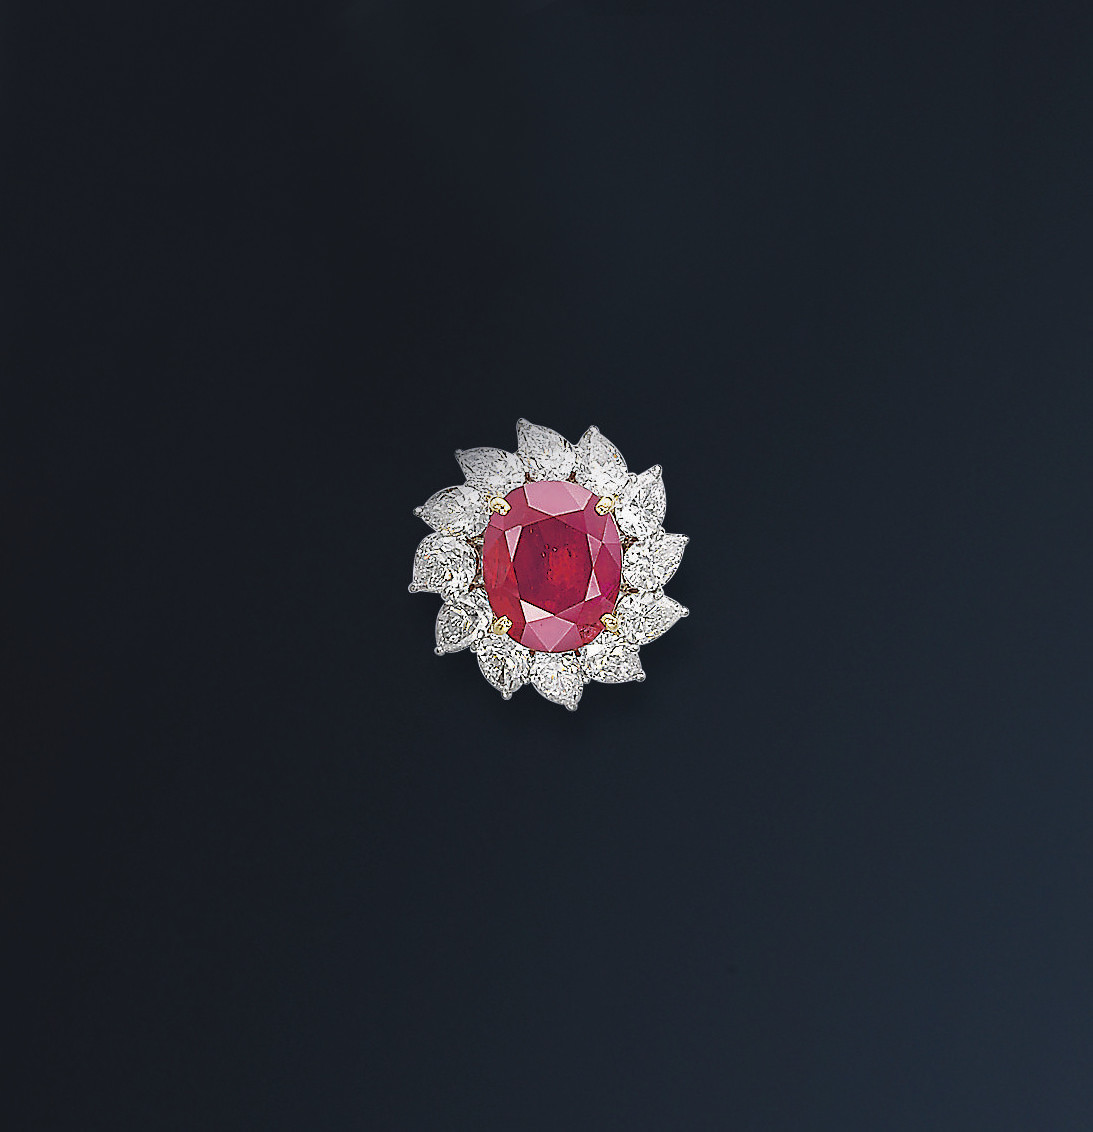 A MAGNIFICENT RUBY AND DIAMOND